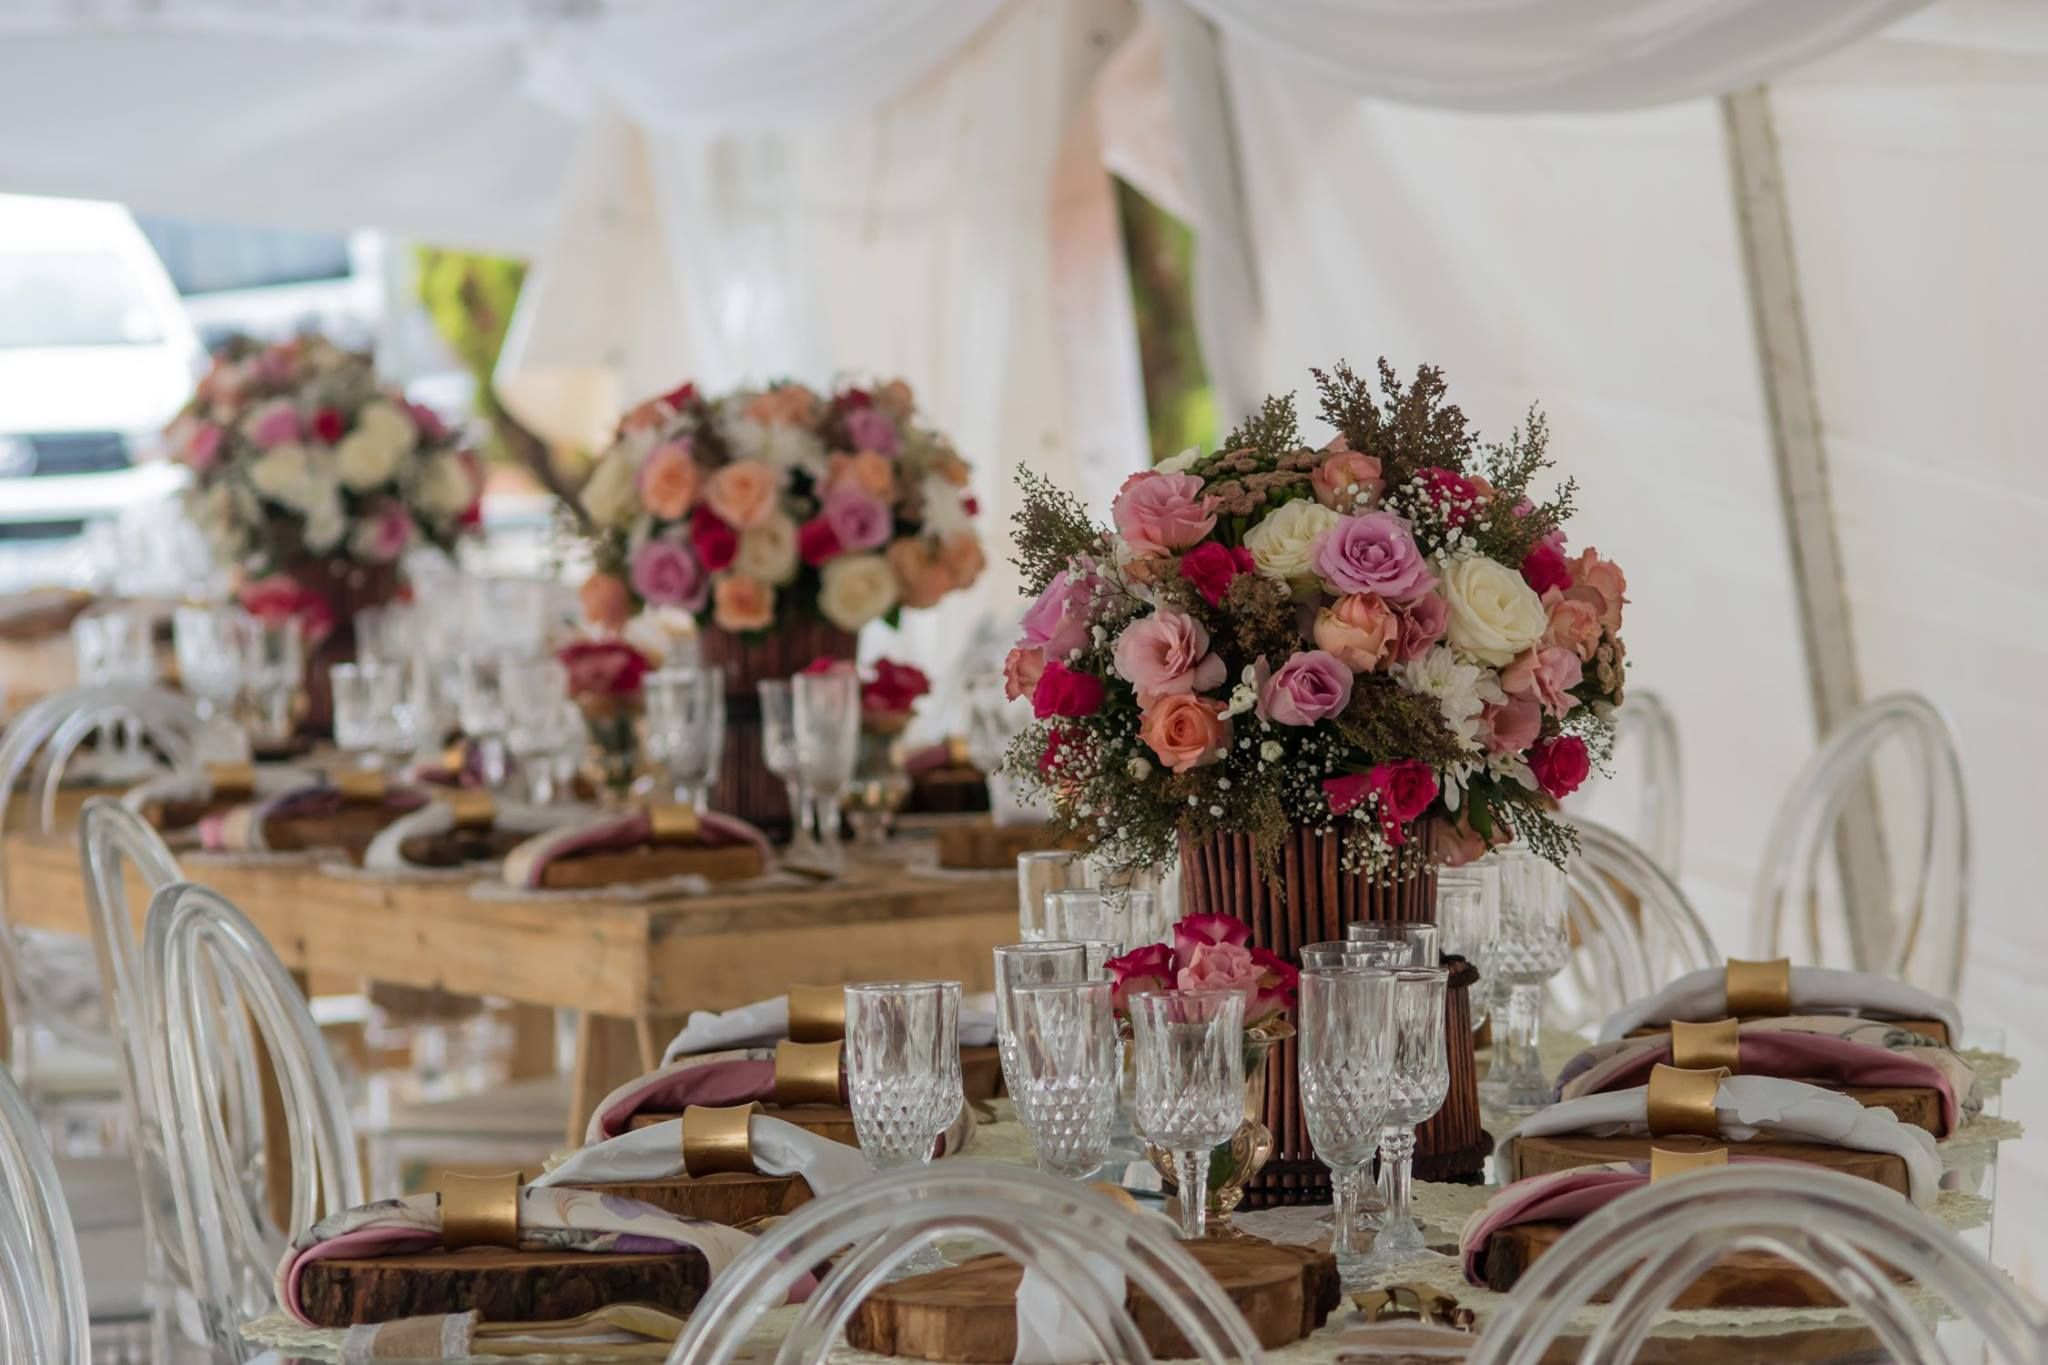 African traditional wedding decor  A Weekend Long Stunning Sepedi Wedding  African traditional dresses